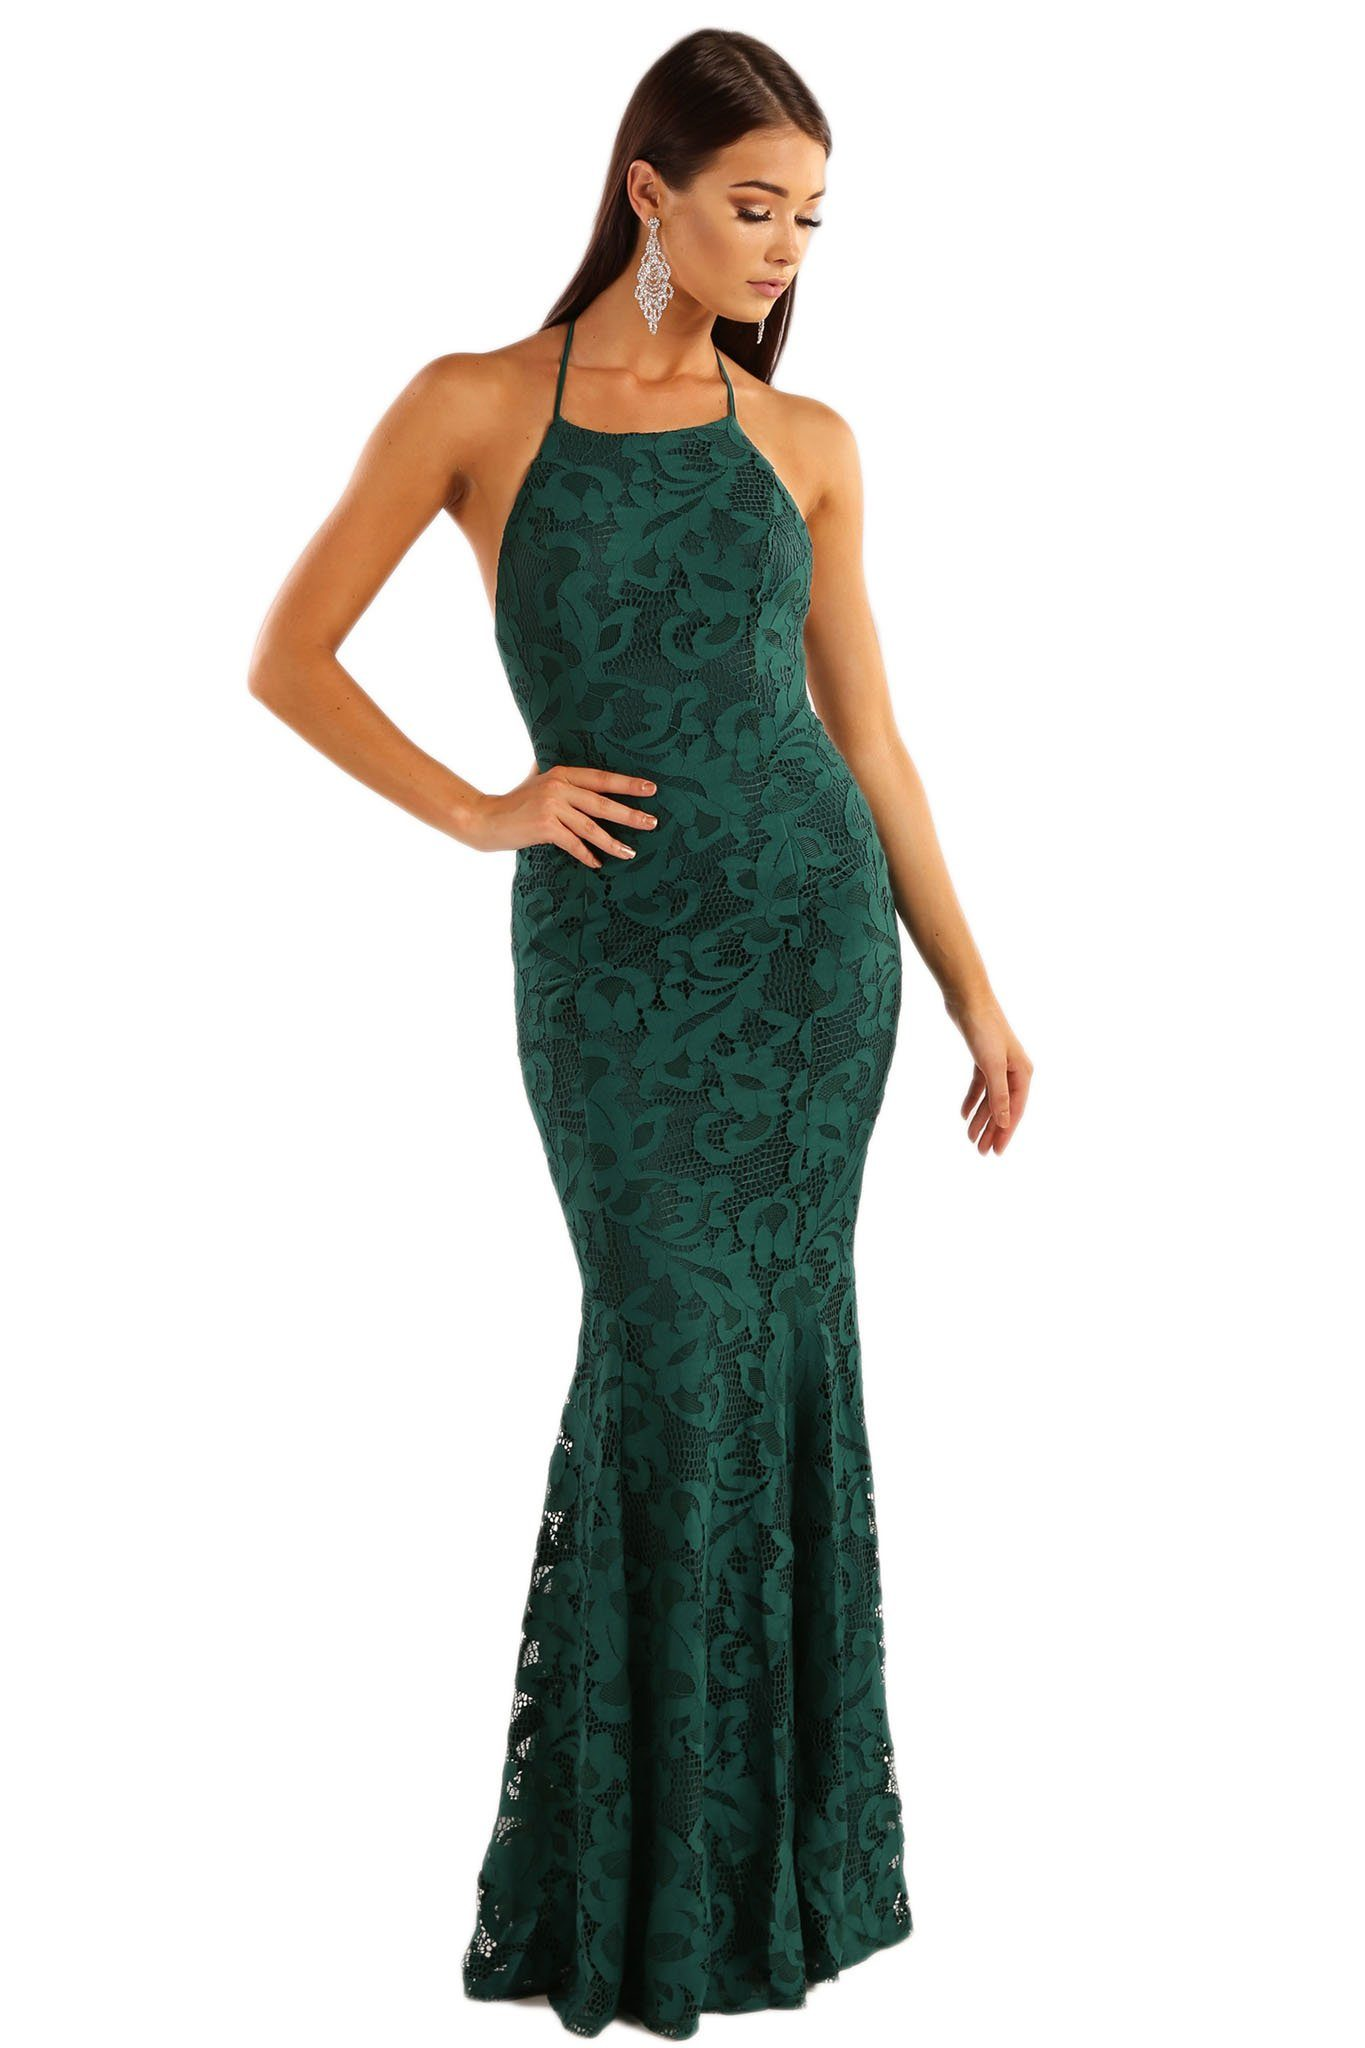 Teal Green lace sleeveless fitted maxi dress with high neckline design, self-tie lace up back strings on exposed back and gently flared skirt